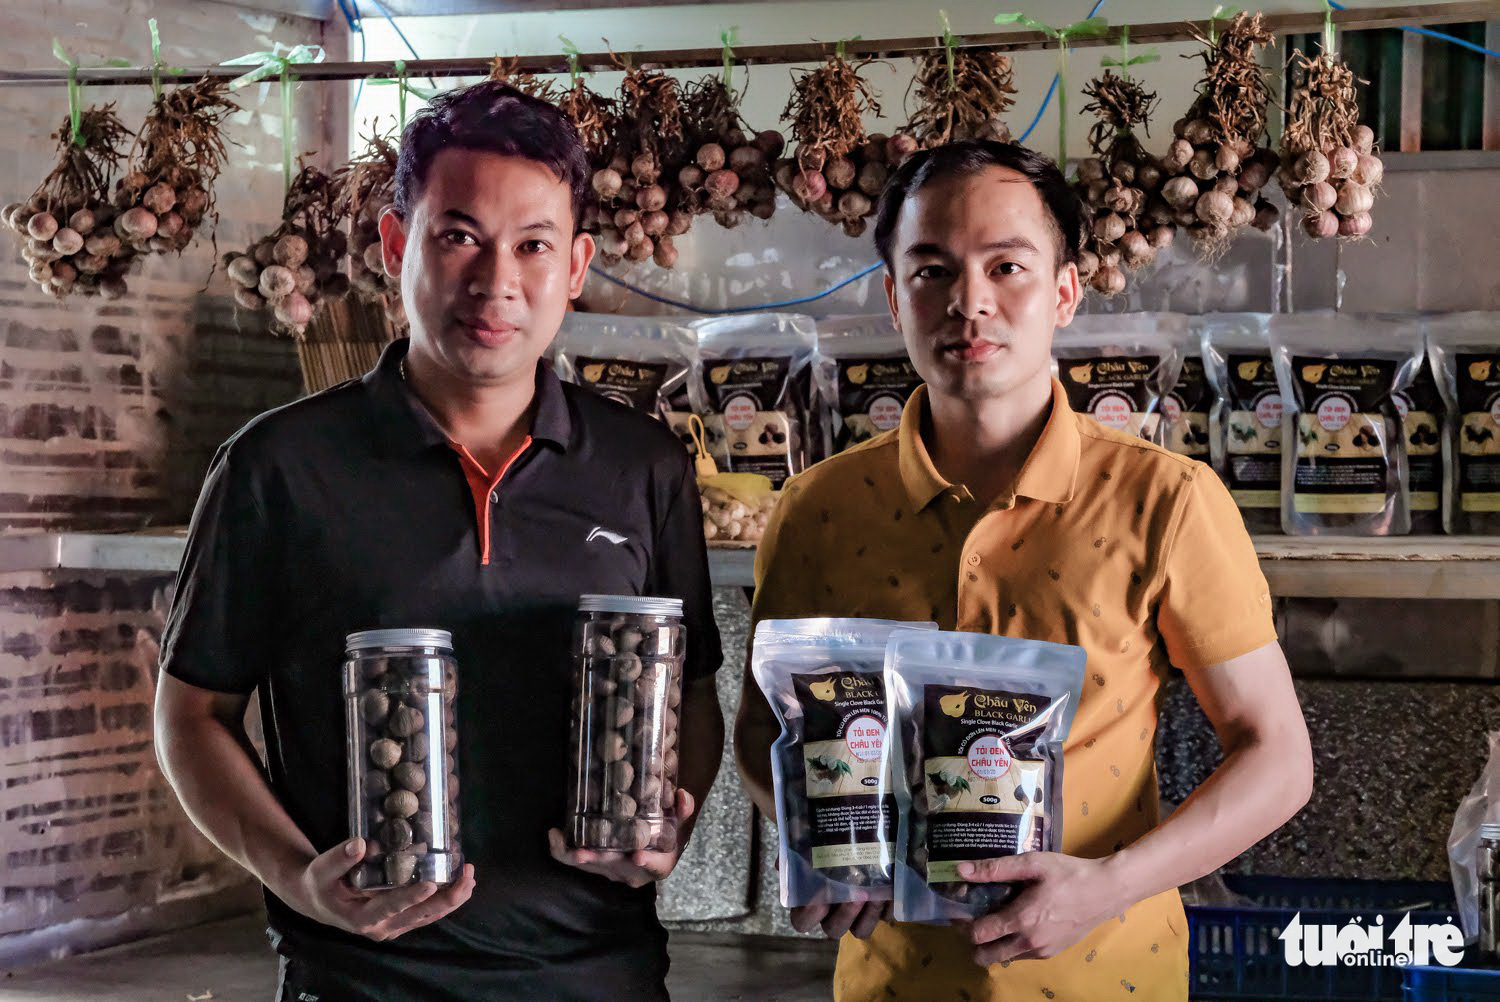 Vietnamese entrepreneurs rake in cash from locally-sourced black garlic